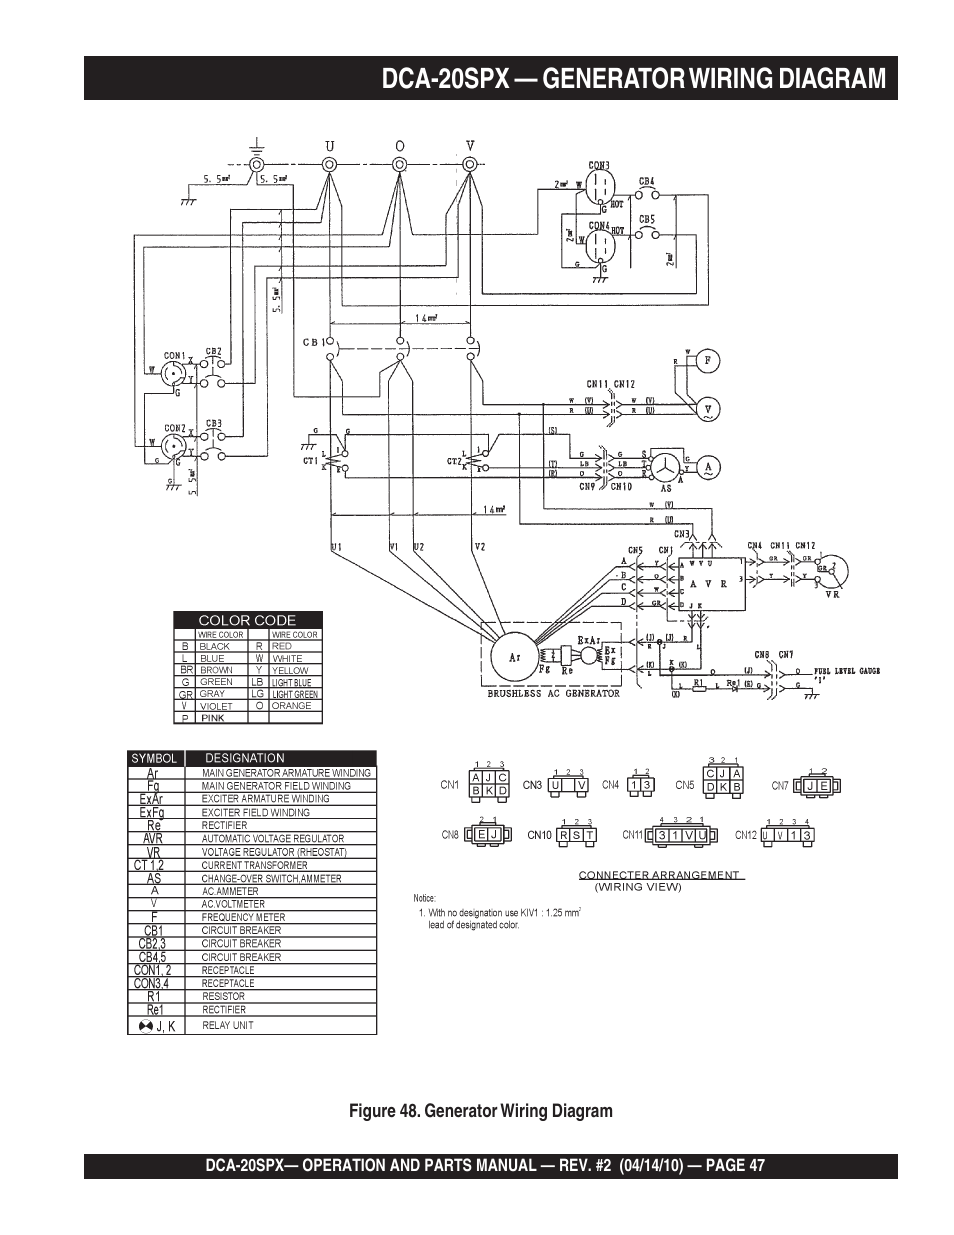 1dca 20spx Generator Wiring Diagram Multiquip Whisperwatt Series Change Over Switch Dca User Manual Page 47 84